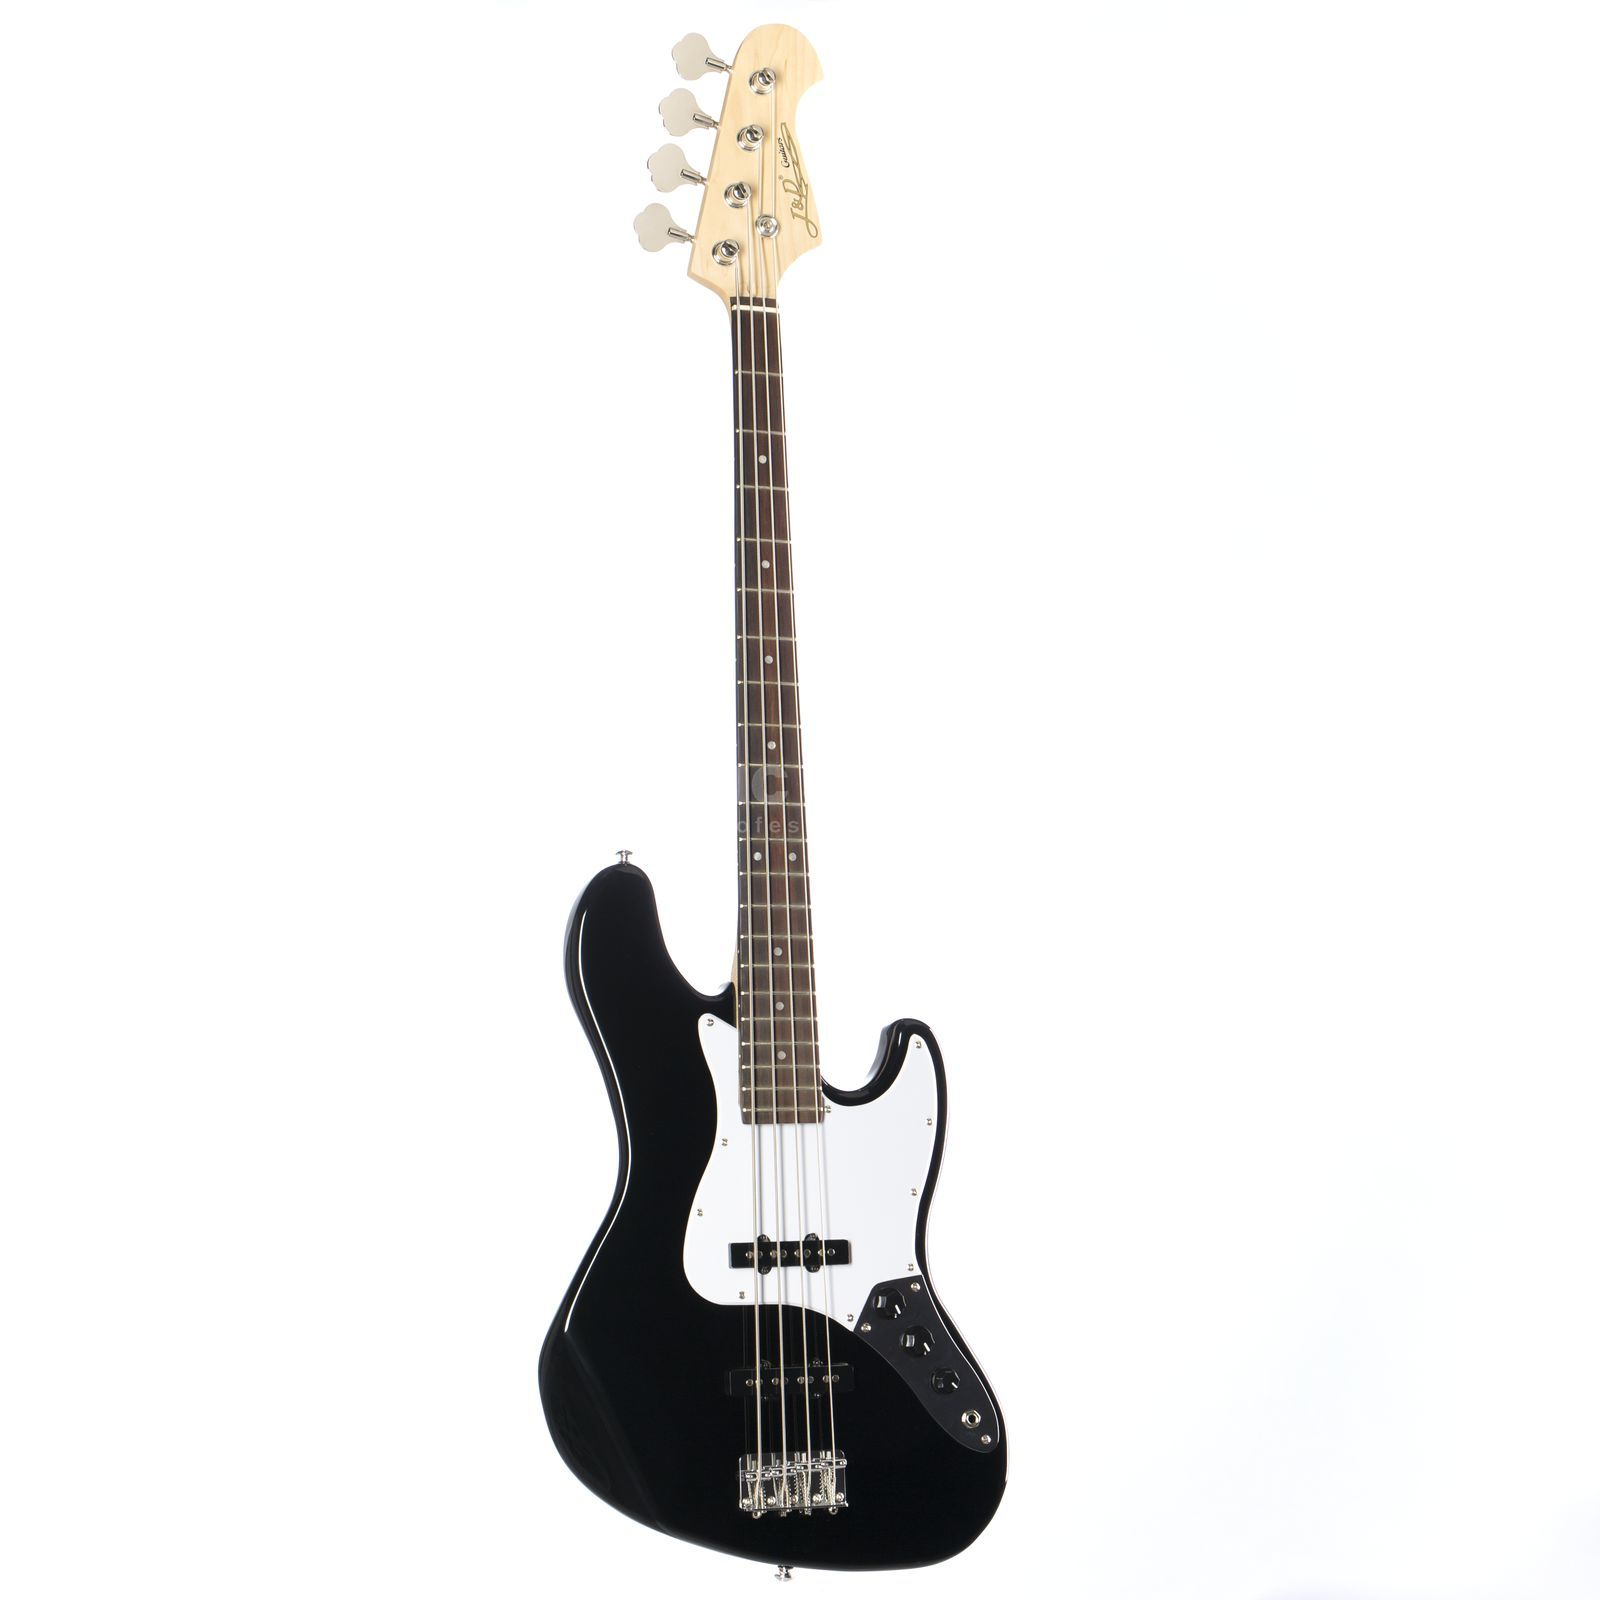 Jack & Danny Bass guitar YC-JB Black Product Image